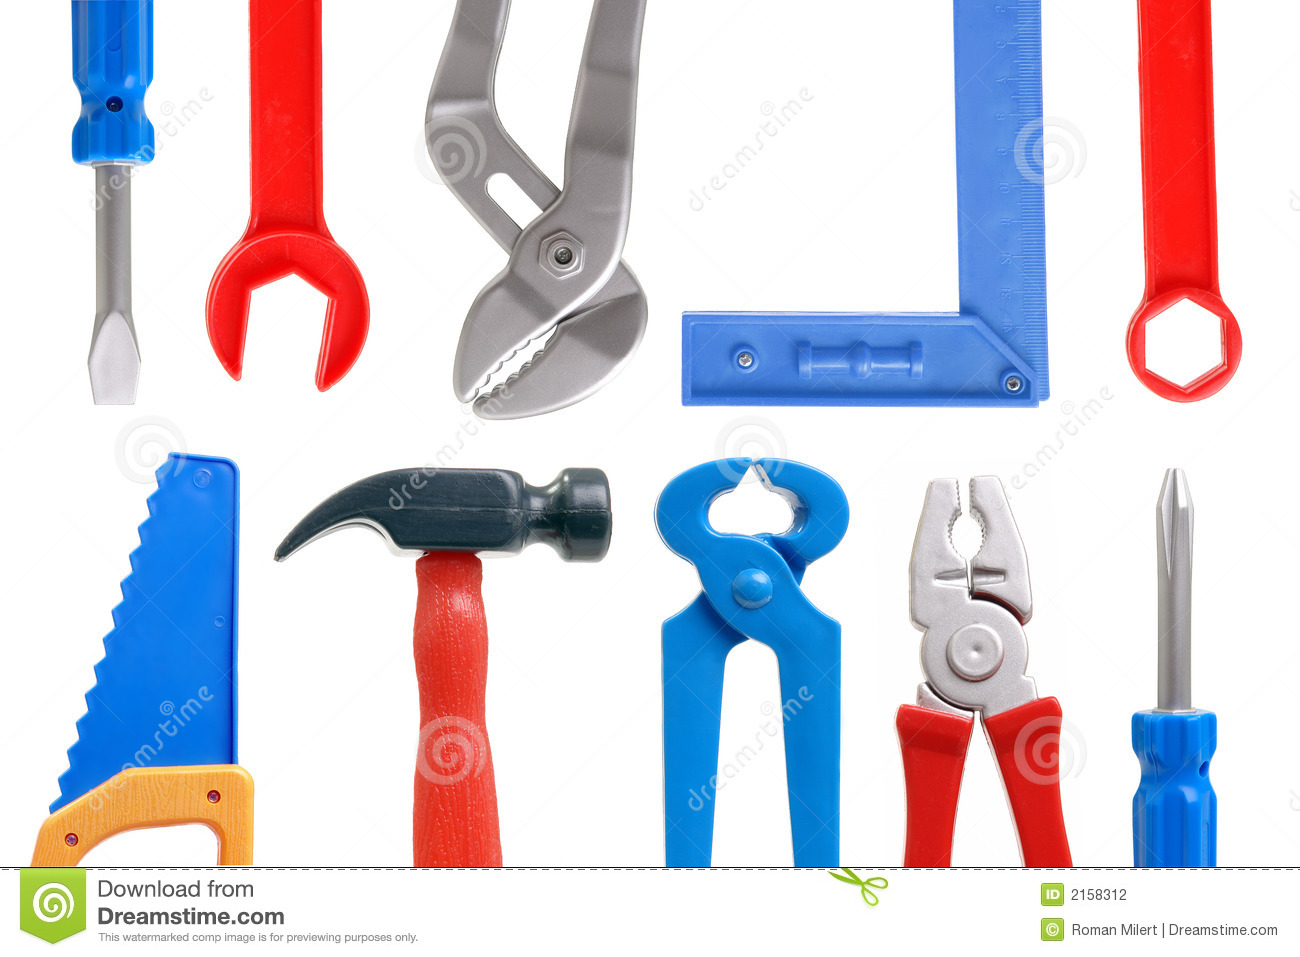 Plastic Toy Tools : Toy tools stock photo image of wrench pliers flat